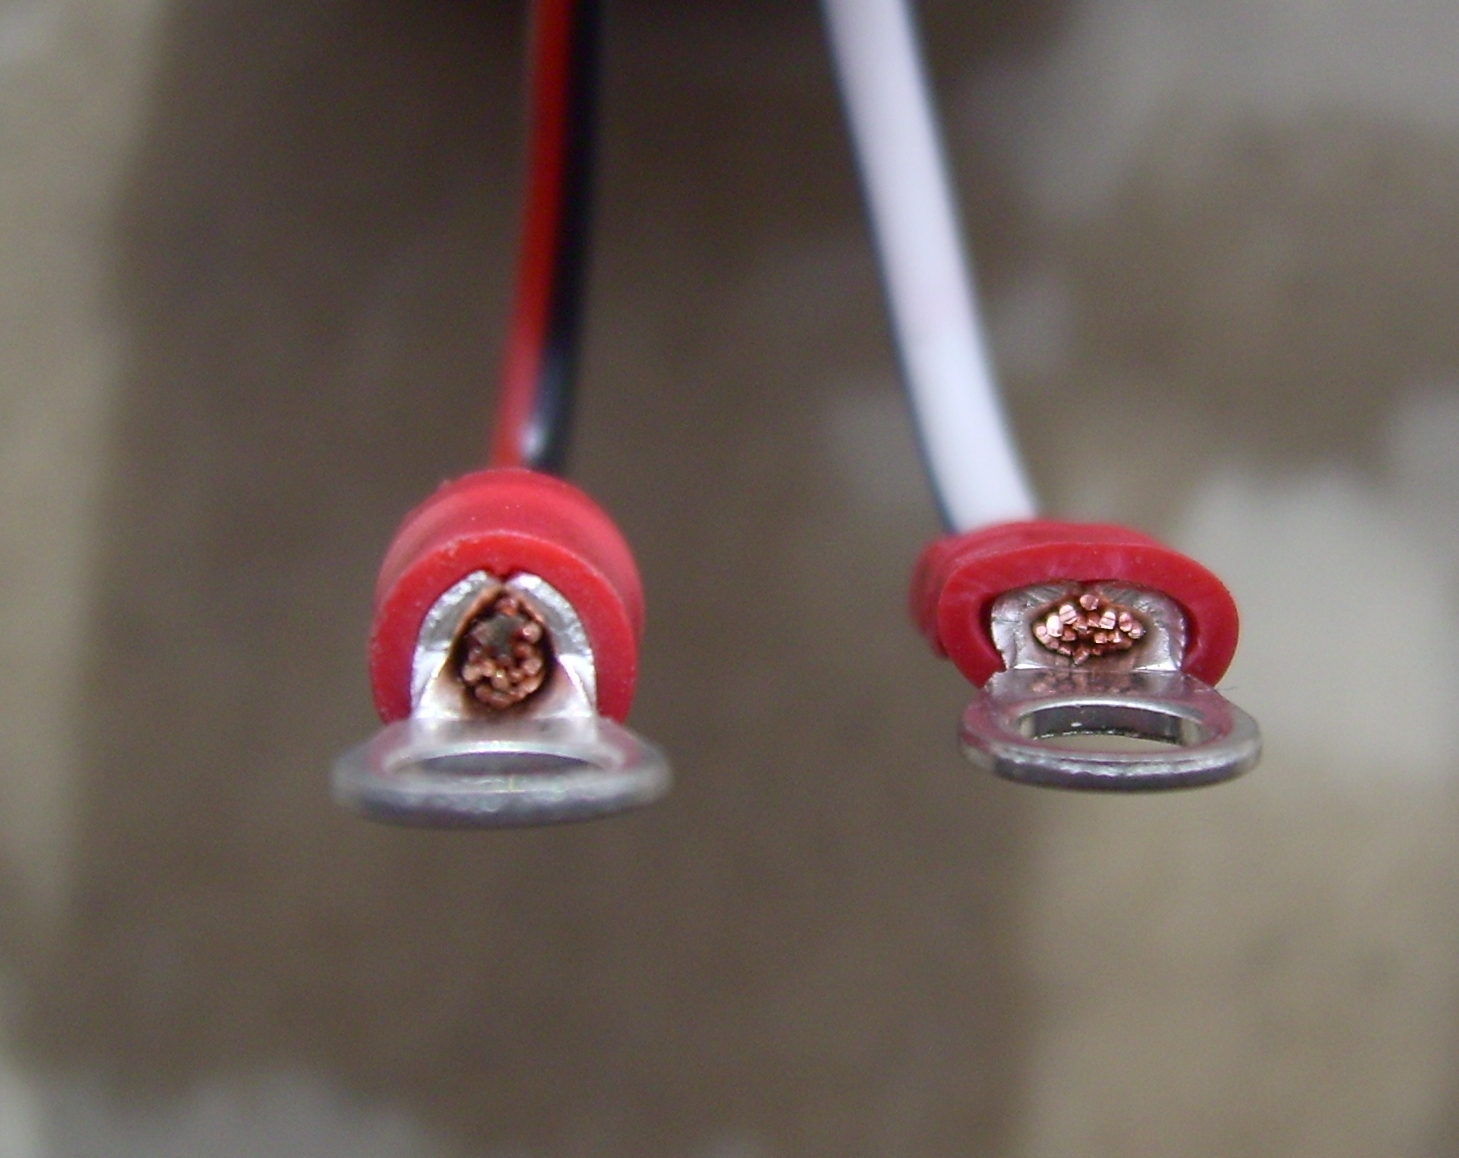 Crimp Electrical Wikipedia Wiring Also Electric 4 Wire Range Outlet Extension Cord Close Up Of A Ring Tongue Terminal More Specialized Connectors Are Used For Example As Signal On Coaxial Cables